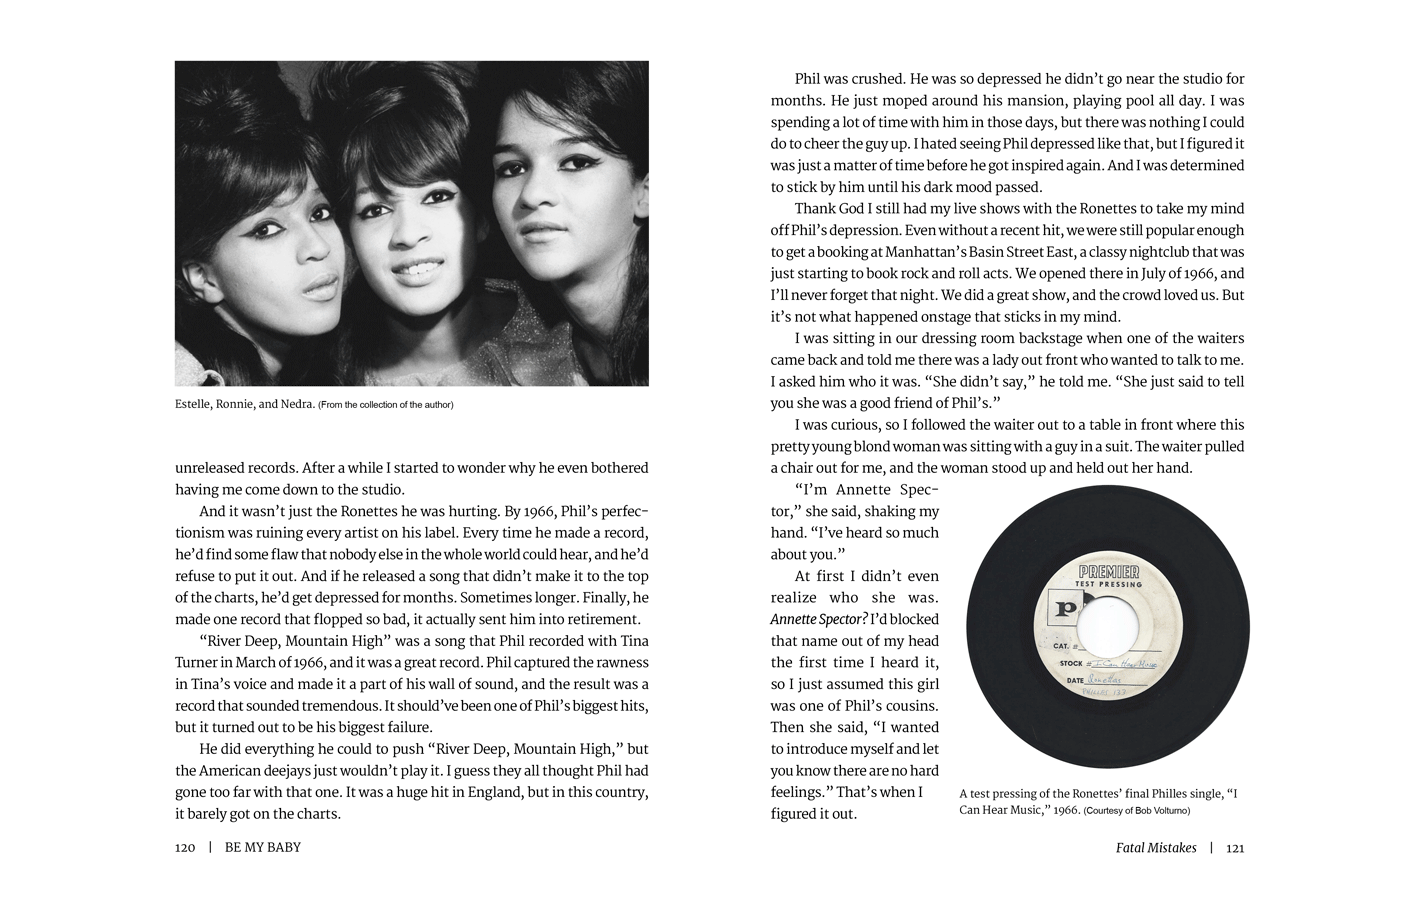 Pages 120-121 for Be My Baby, a memoir by Ronnie Spector